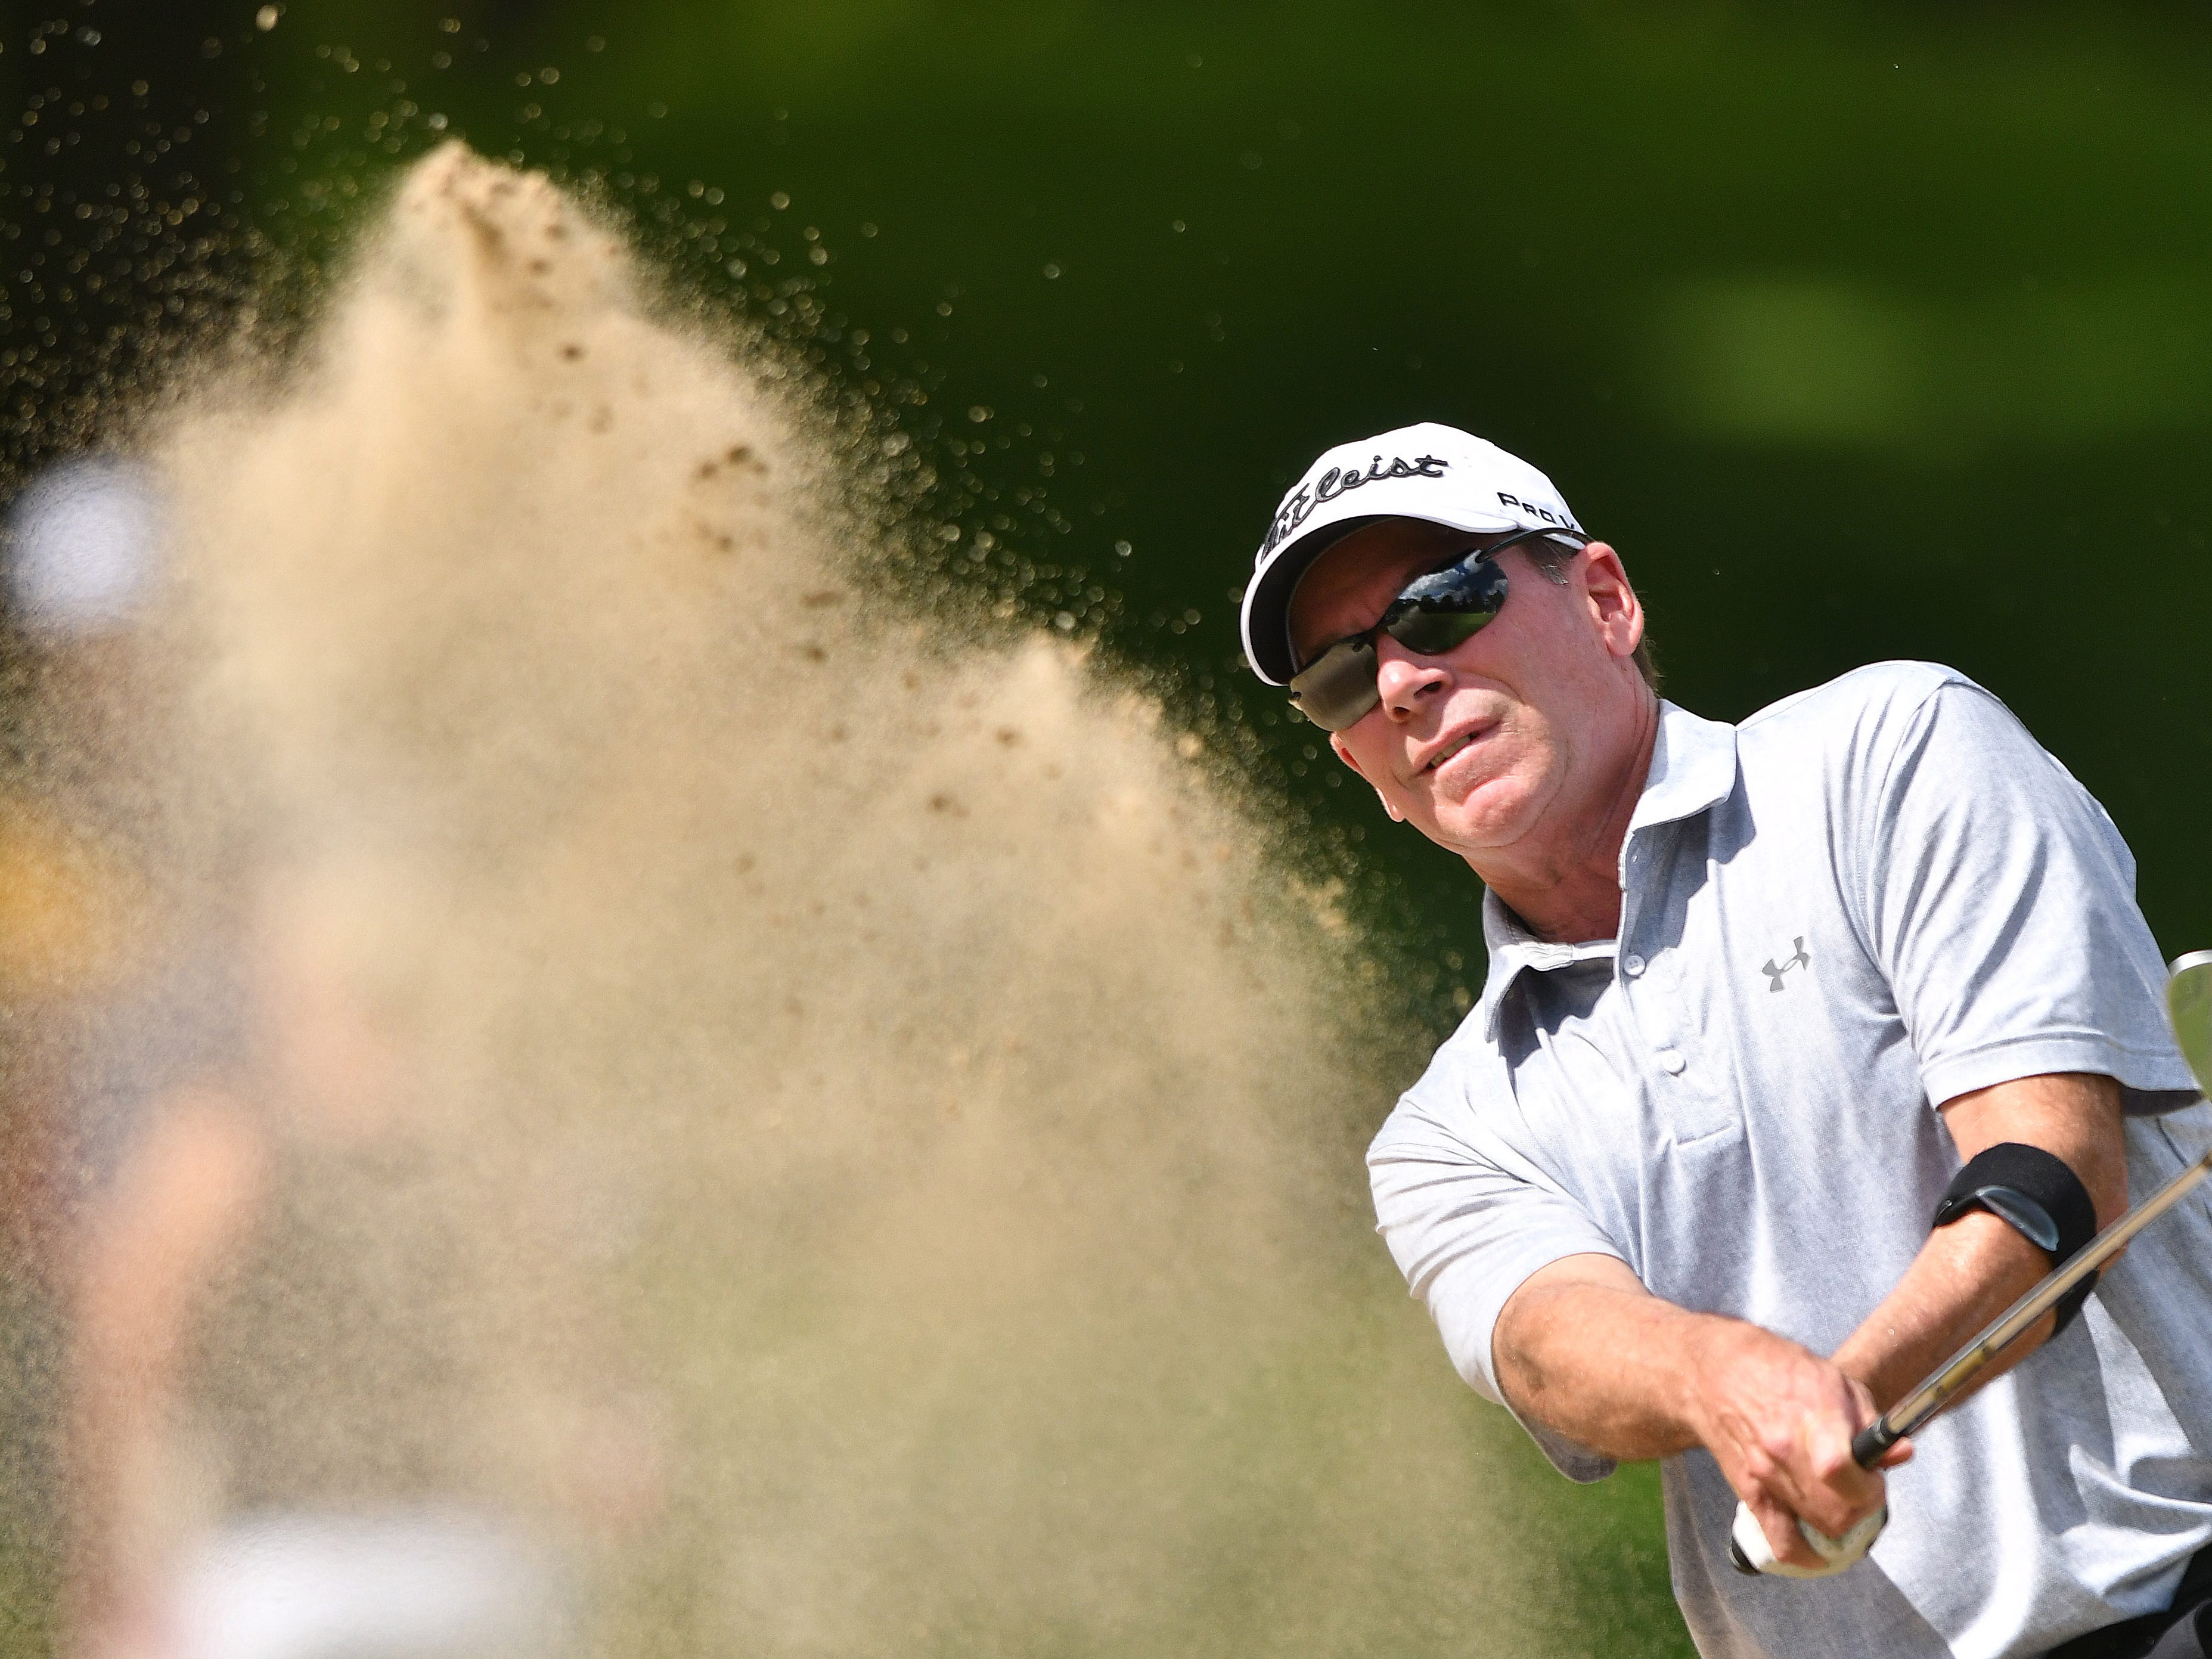 John Huston hits out of a bunker on the first hole at the Ally Challenge.